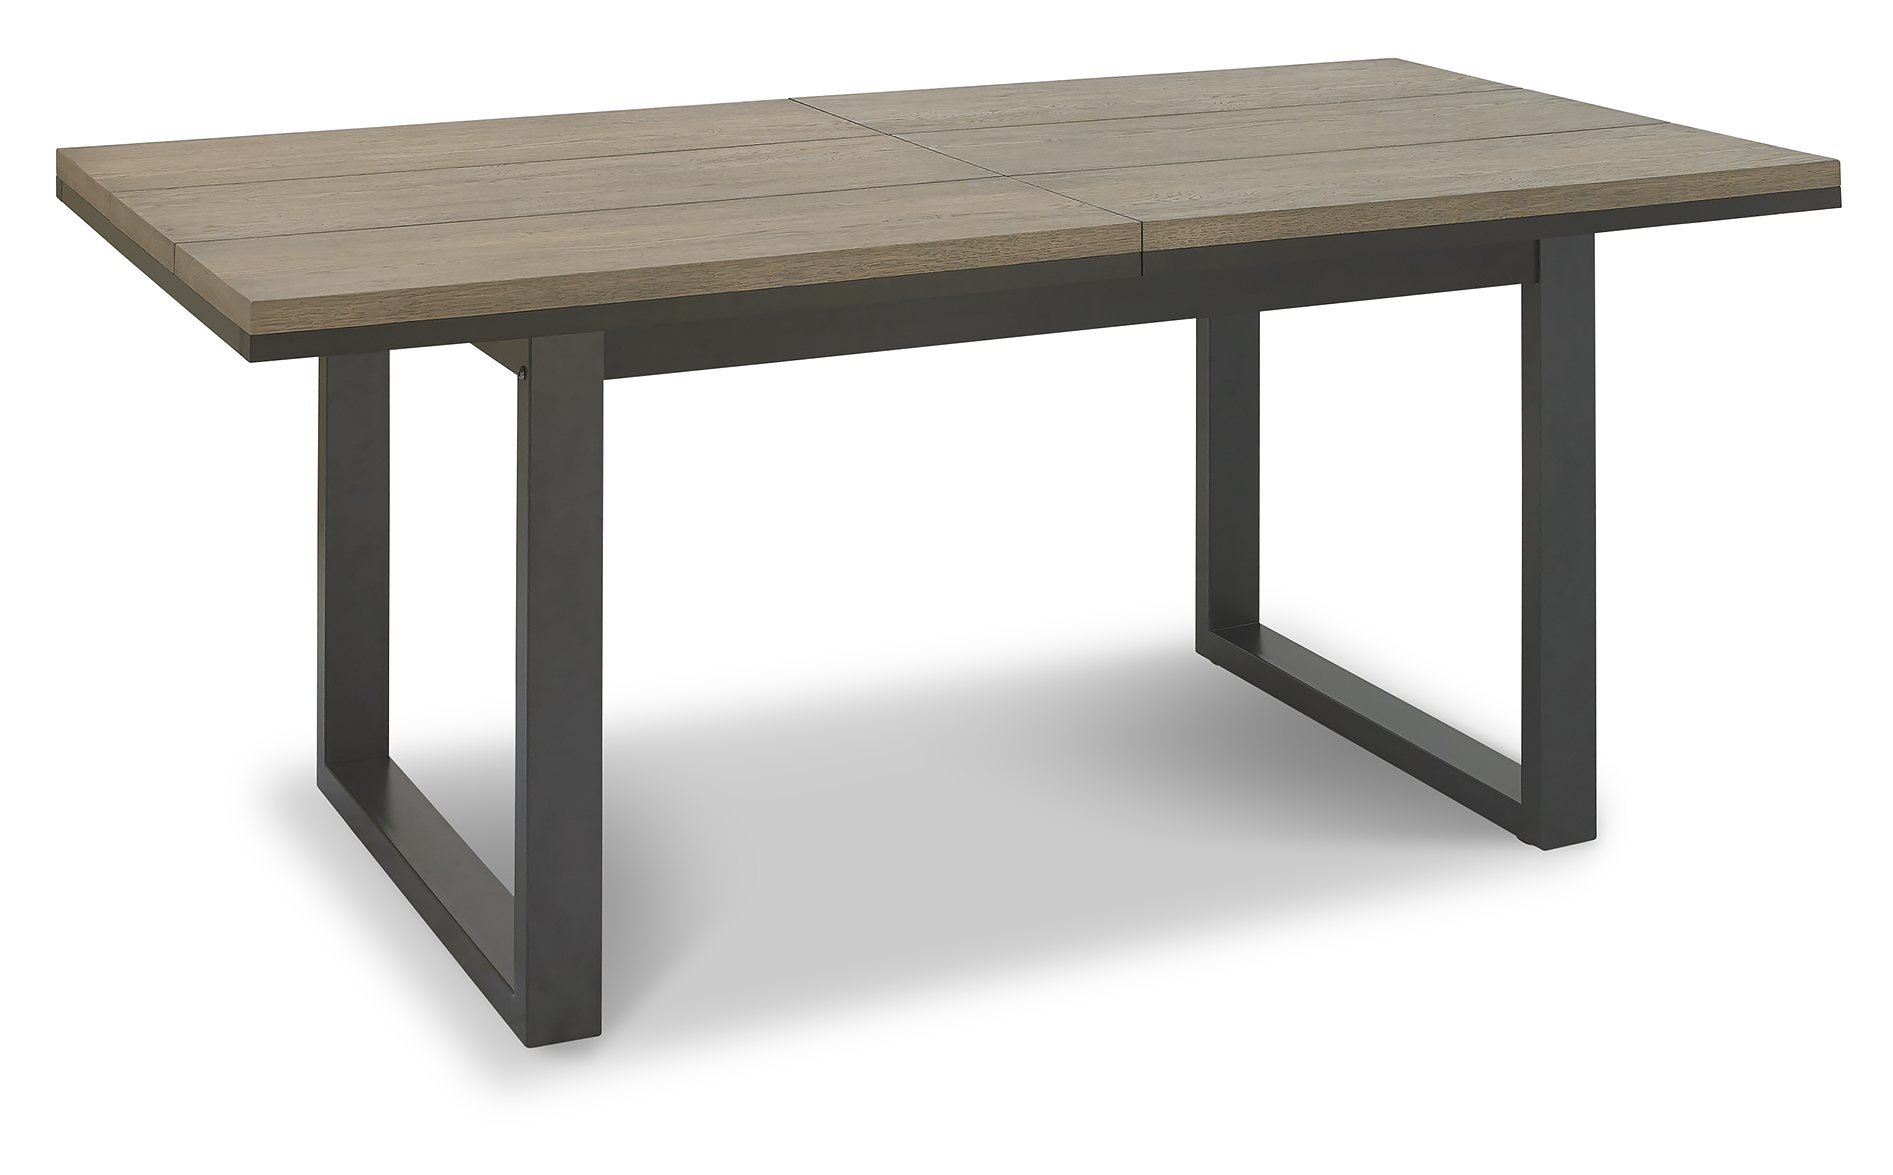 BRININDISI 6-8 EXTENDING DINING TABLE - CLOSED